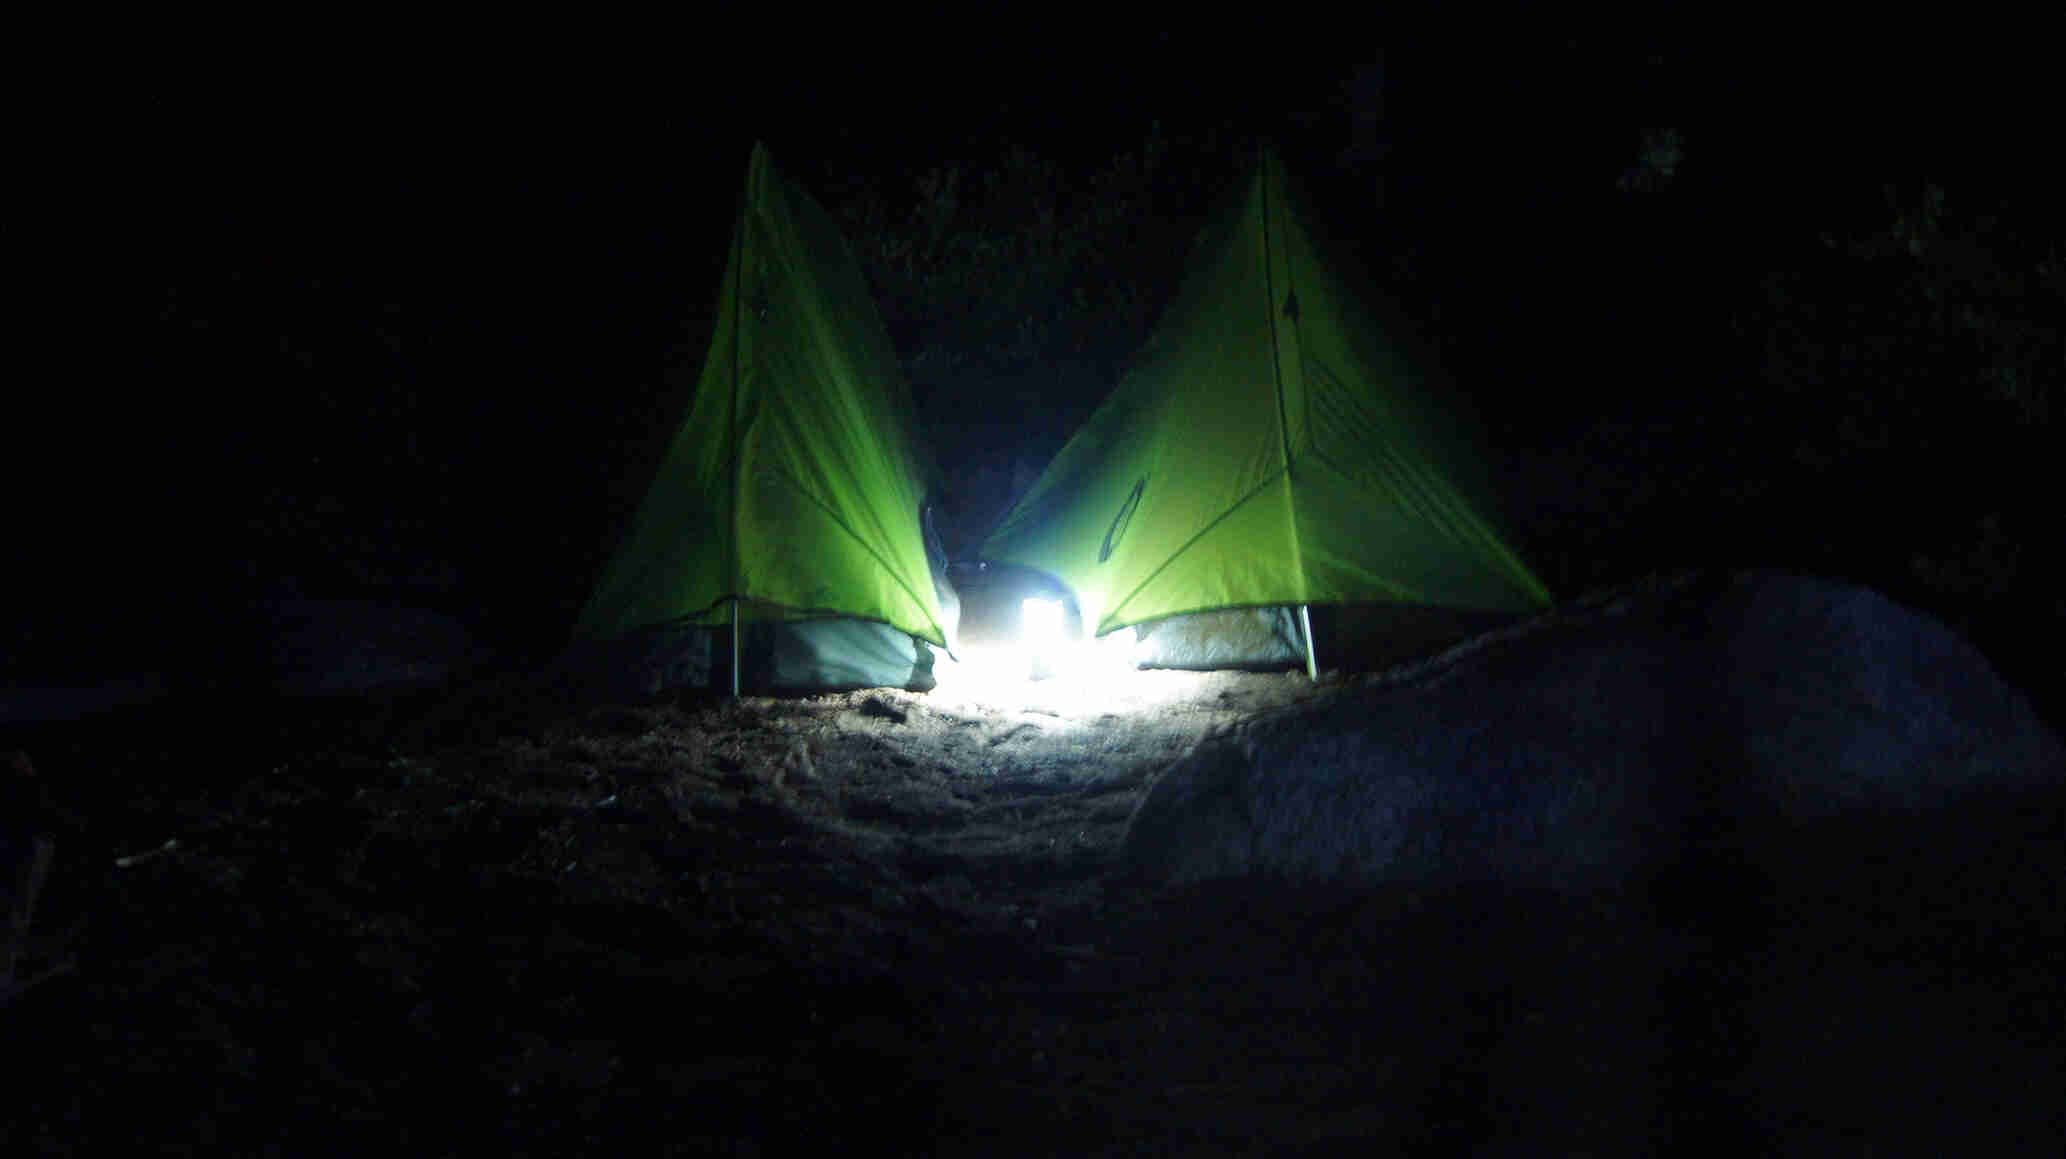 Two tents, next to each other, at night, with a light on the ground between them